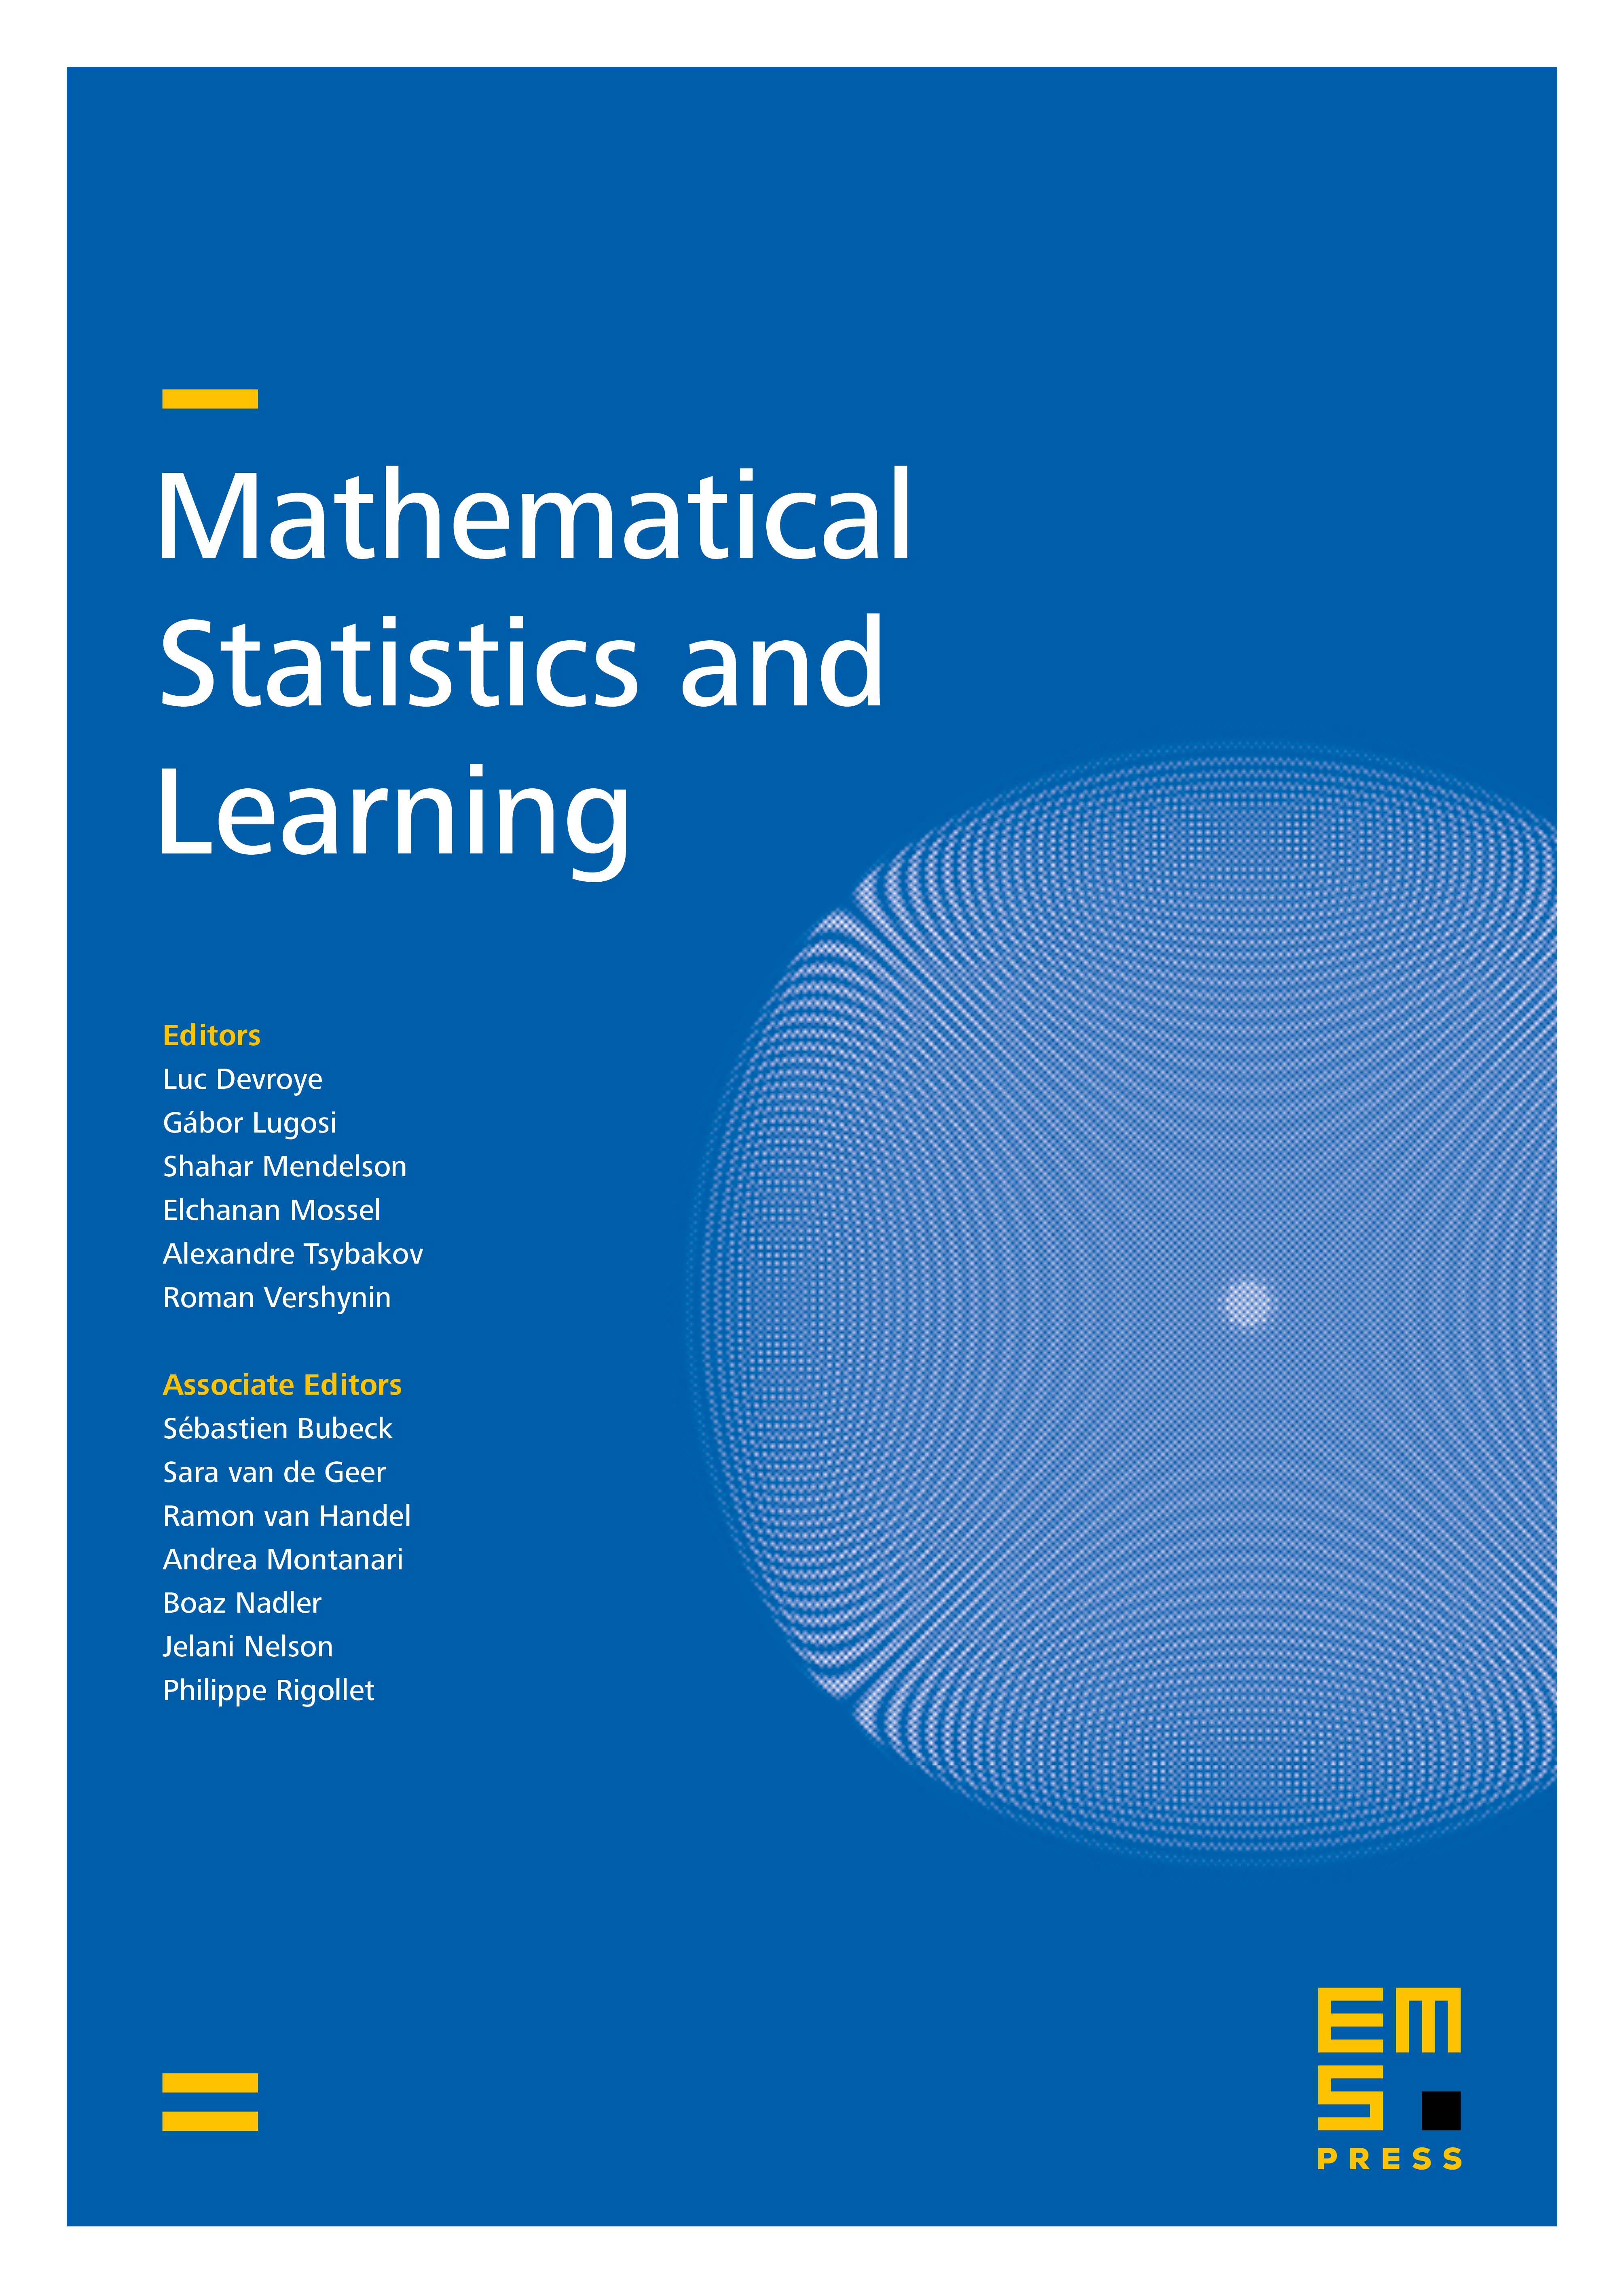 Math. Stat. Learn. cover